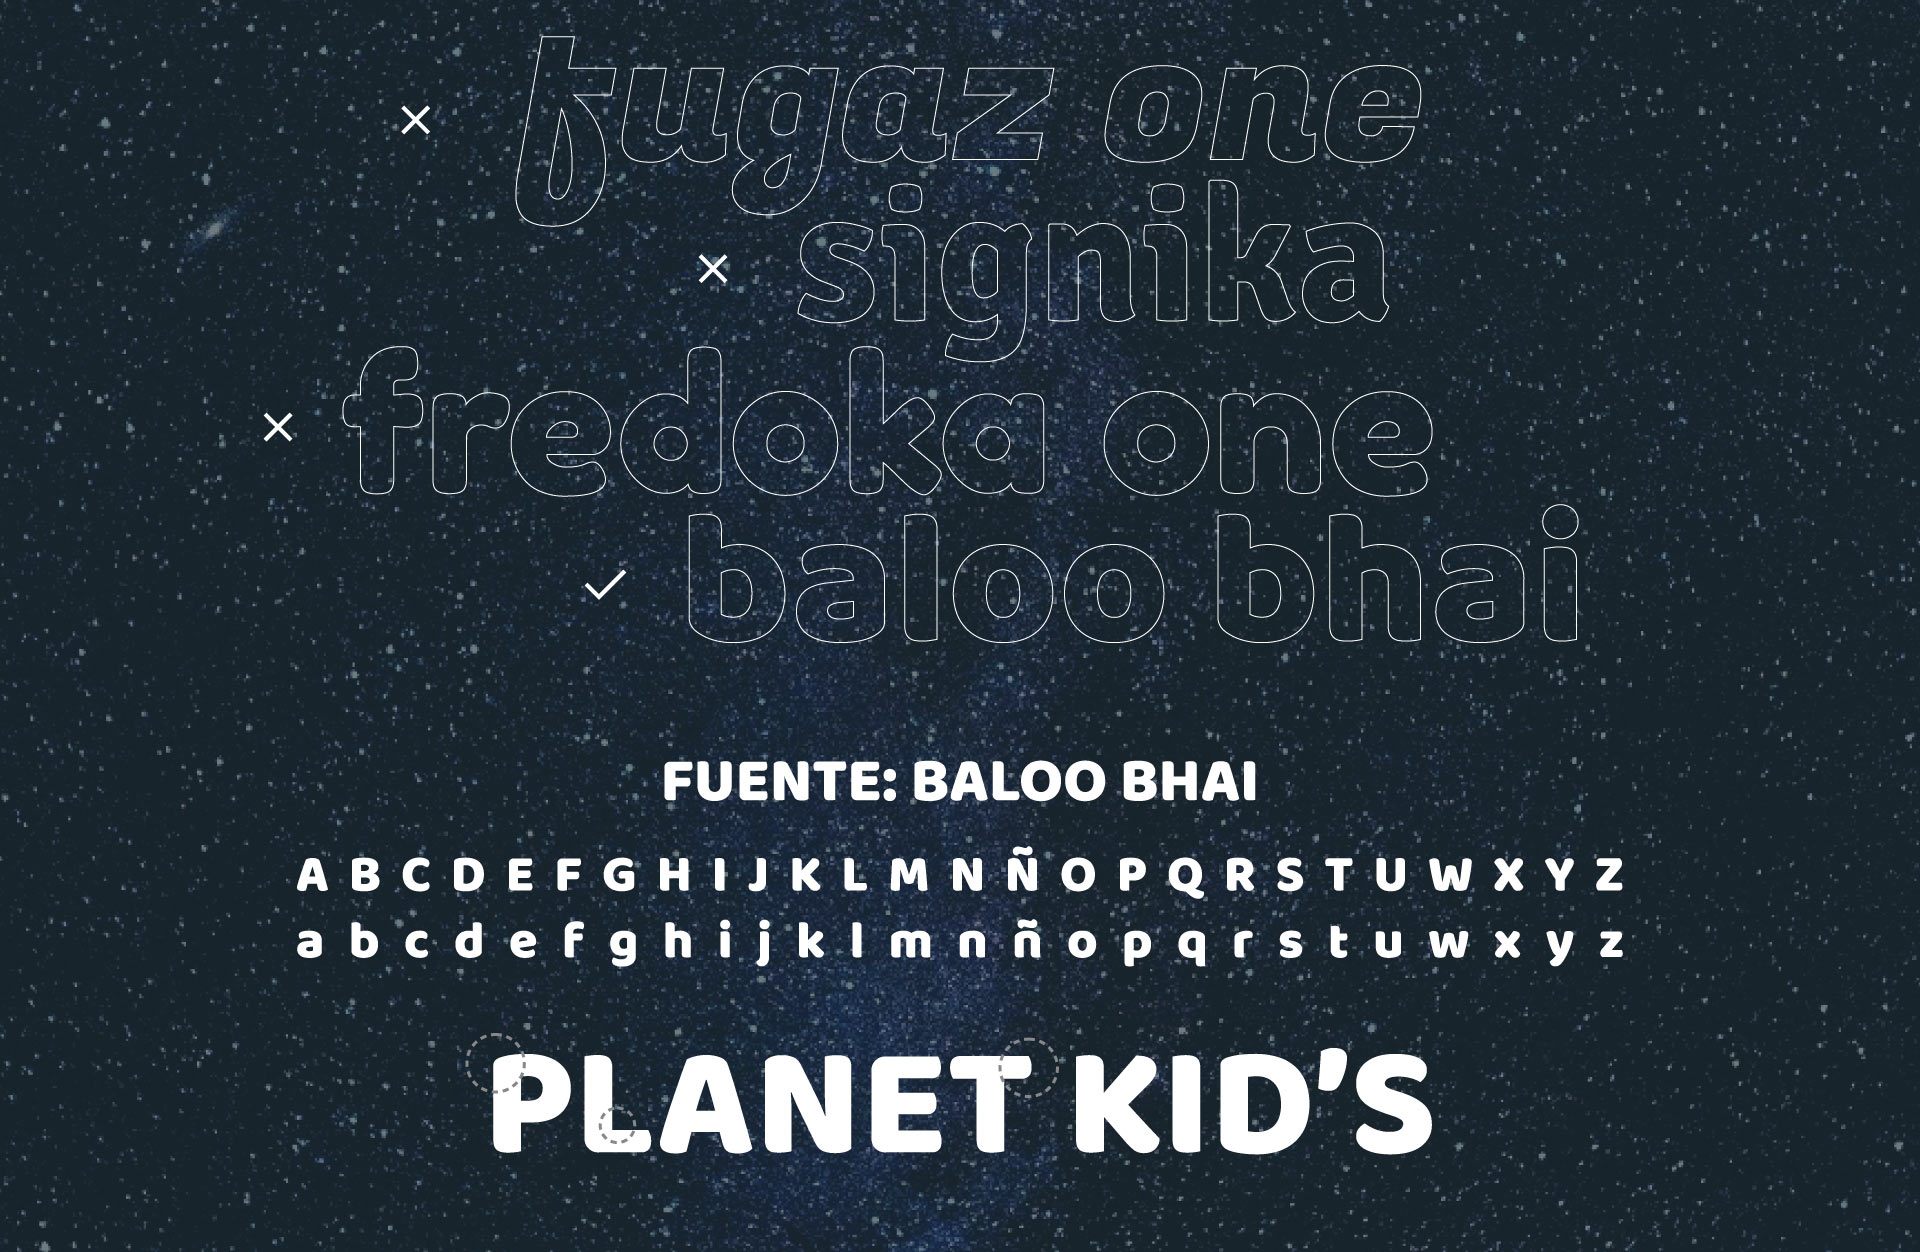 Planet kid's elección tipo movil